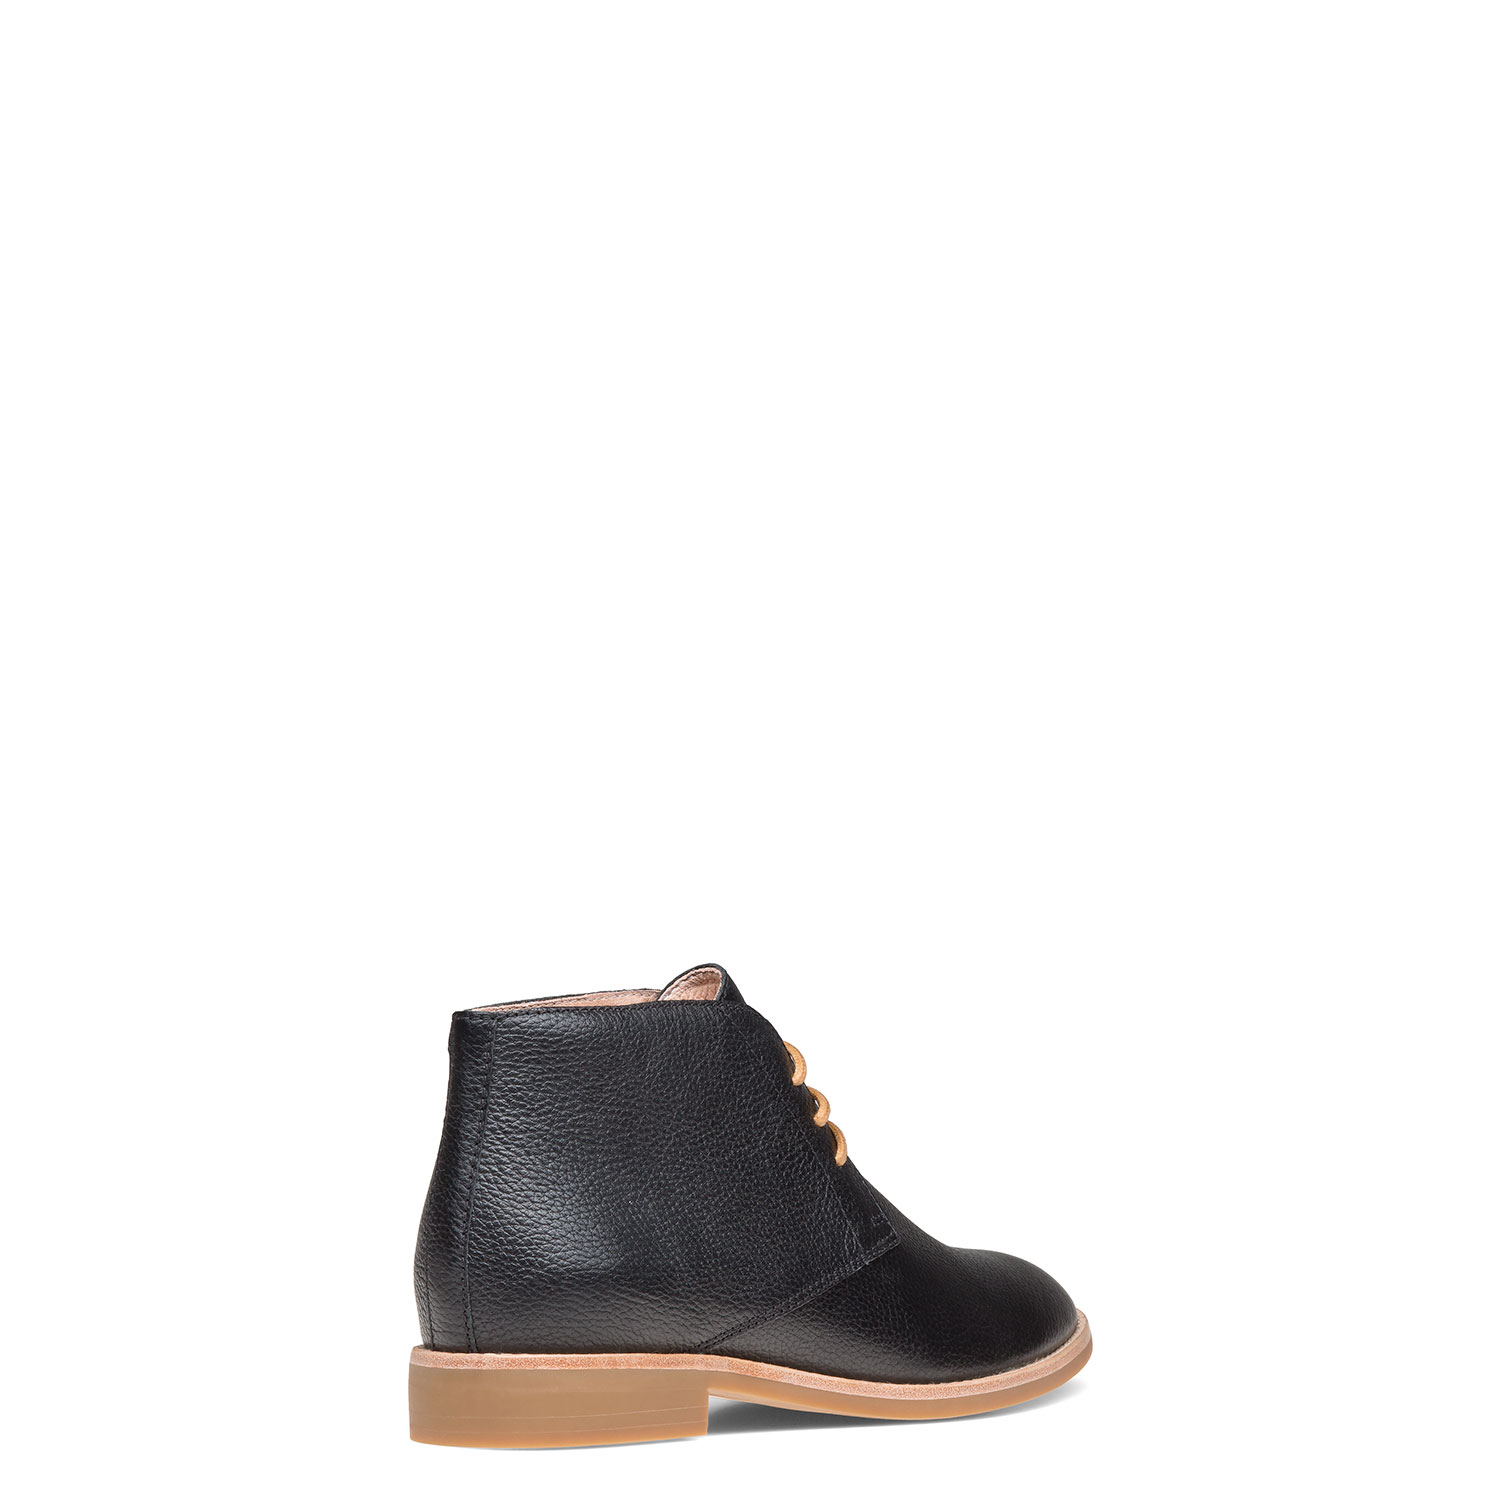 Women's ankle boots PAZOLINI FG-DEE1-1